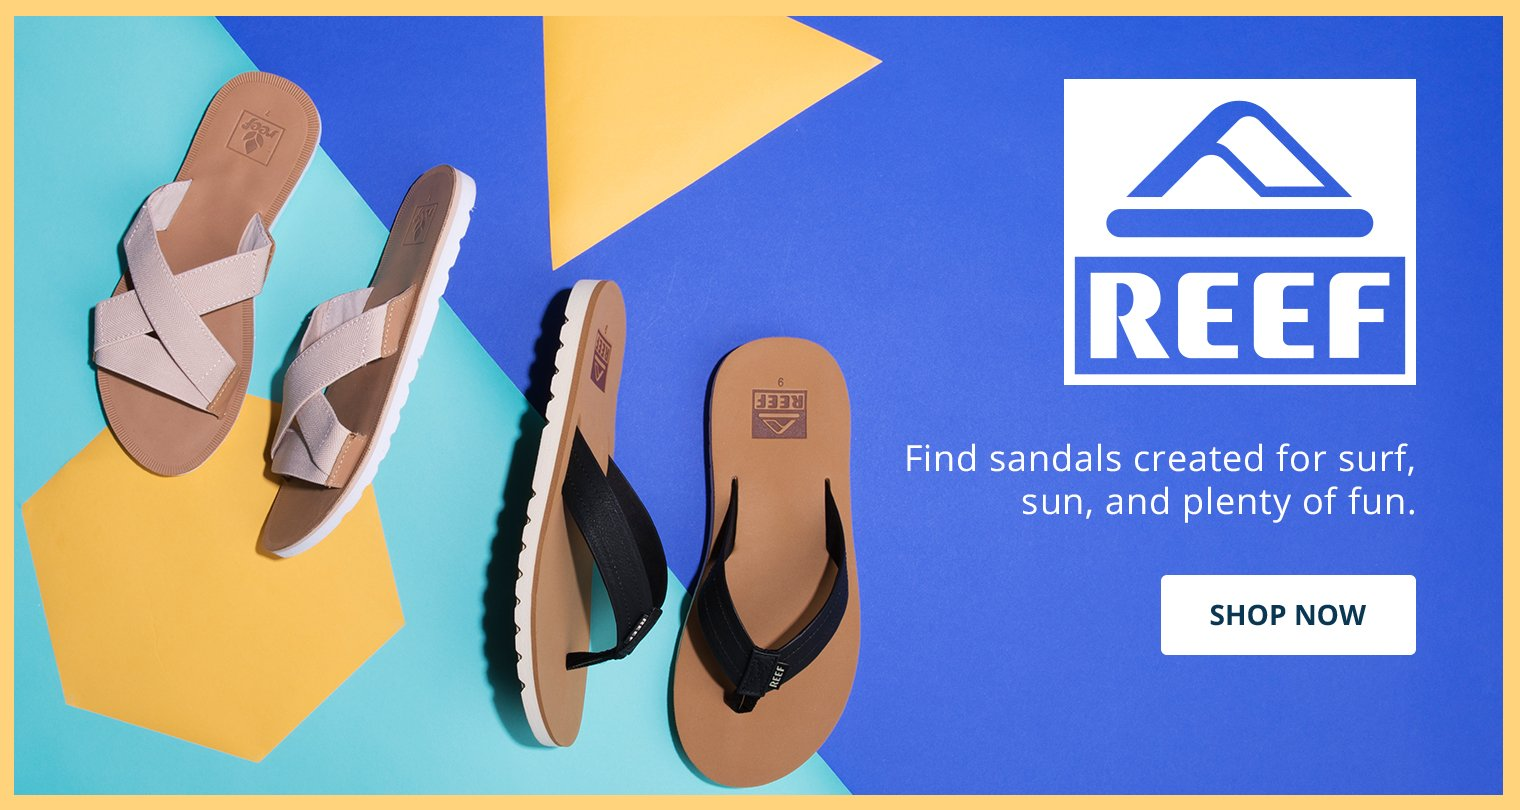 Reef. Find sandals created for surf, sun and plenty of fun. Shop Now.